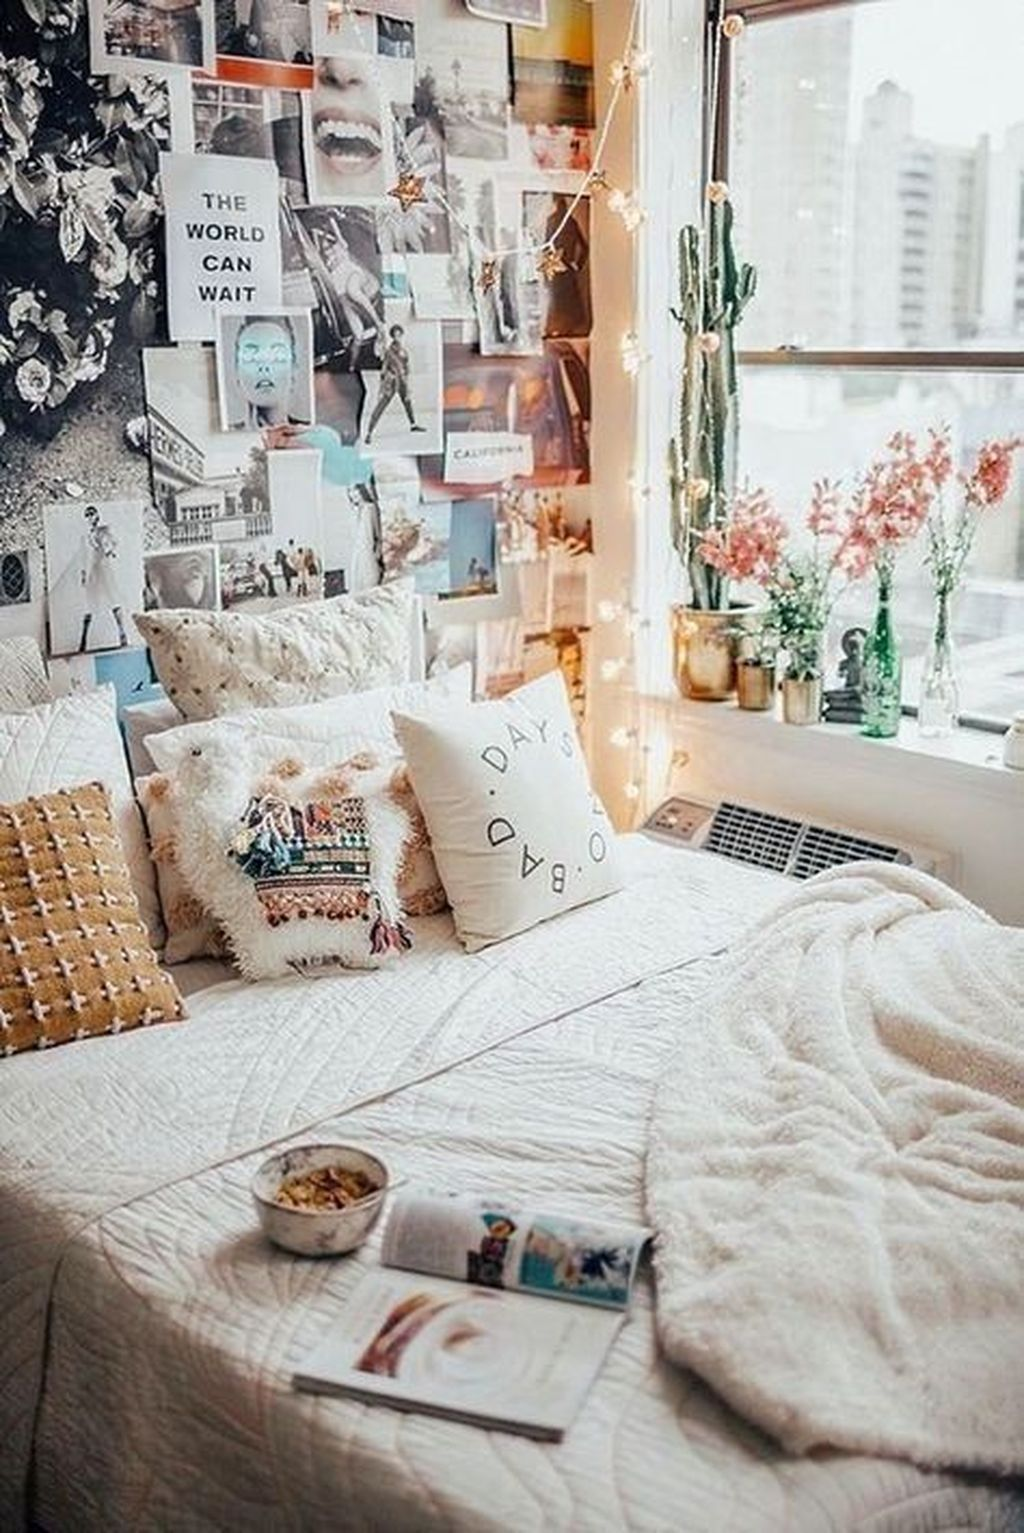 44 Creative Small Bedroom Decor Ideas Easy To Apply Dorm Room Decor Cute Dorm Rooms Dorm Room Diy